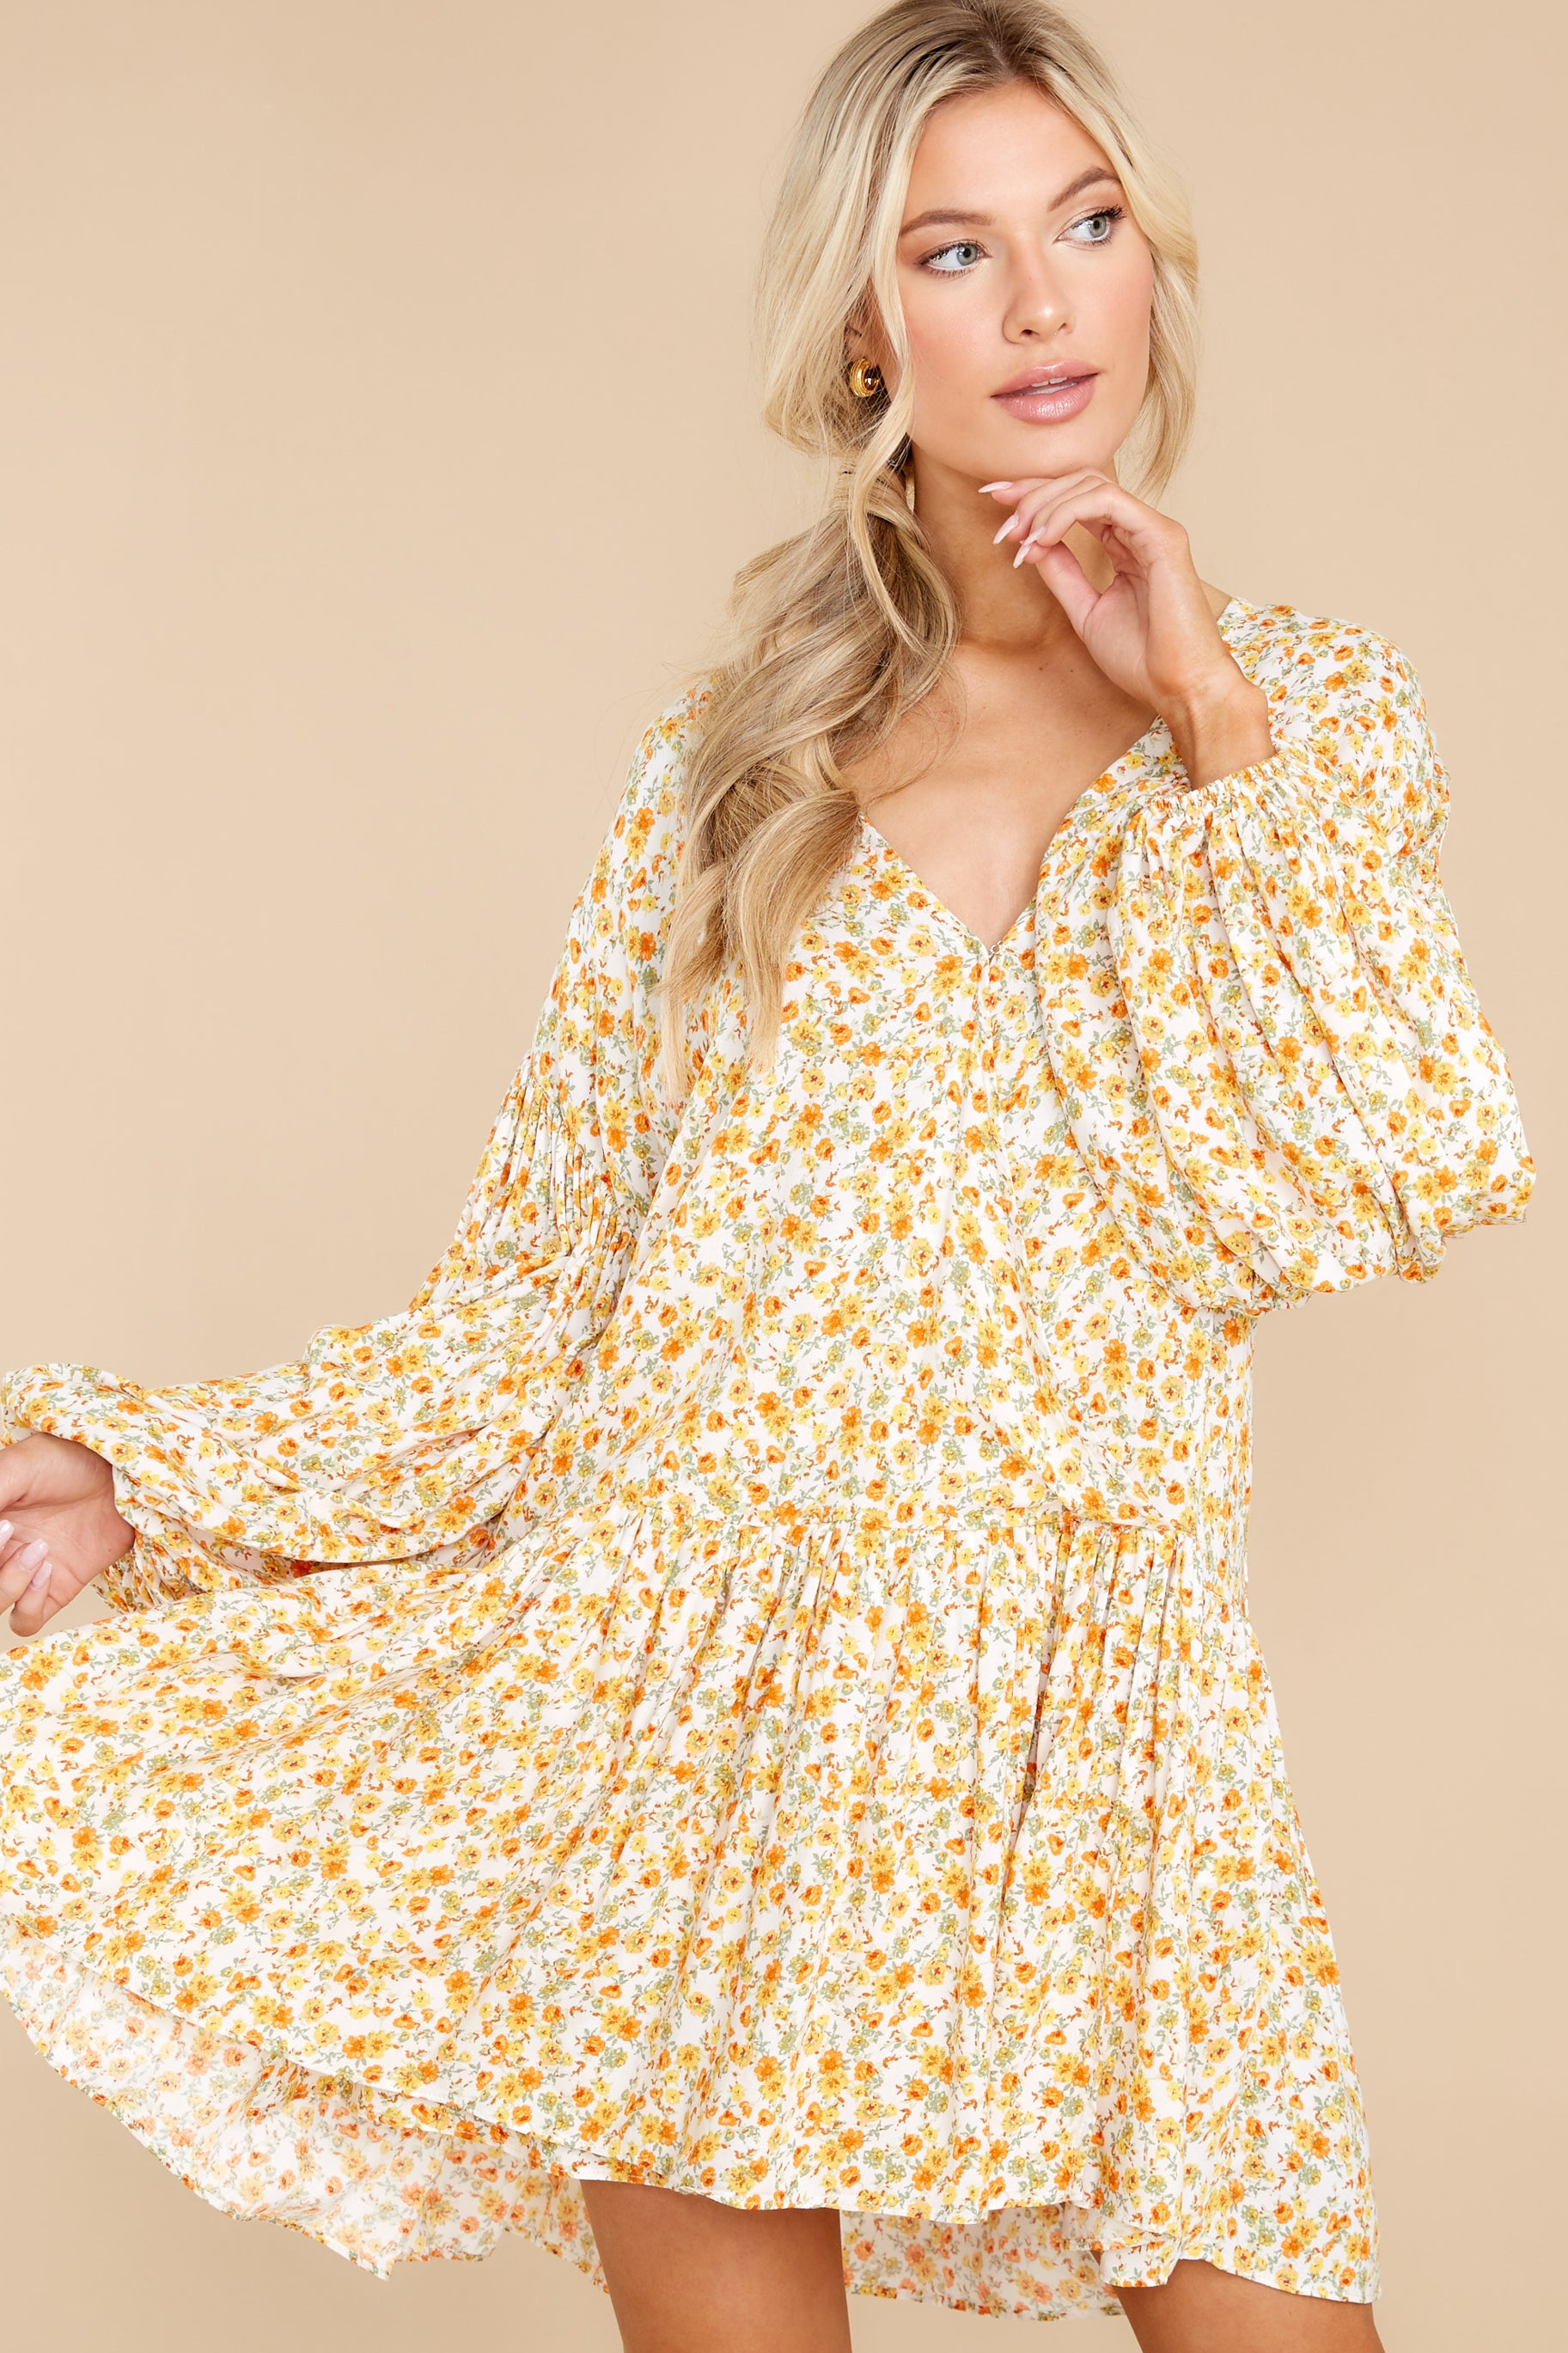 5 Far Away Places Yellow And Orange Floral Print Dress at reddress.com